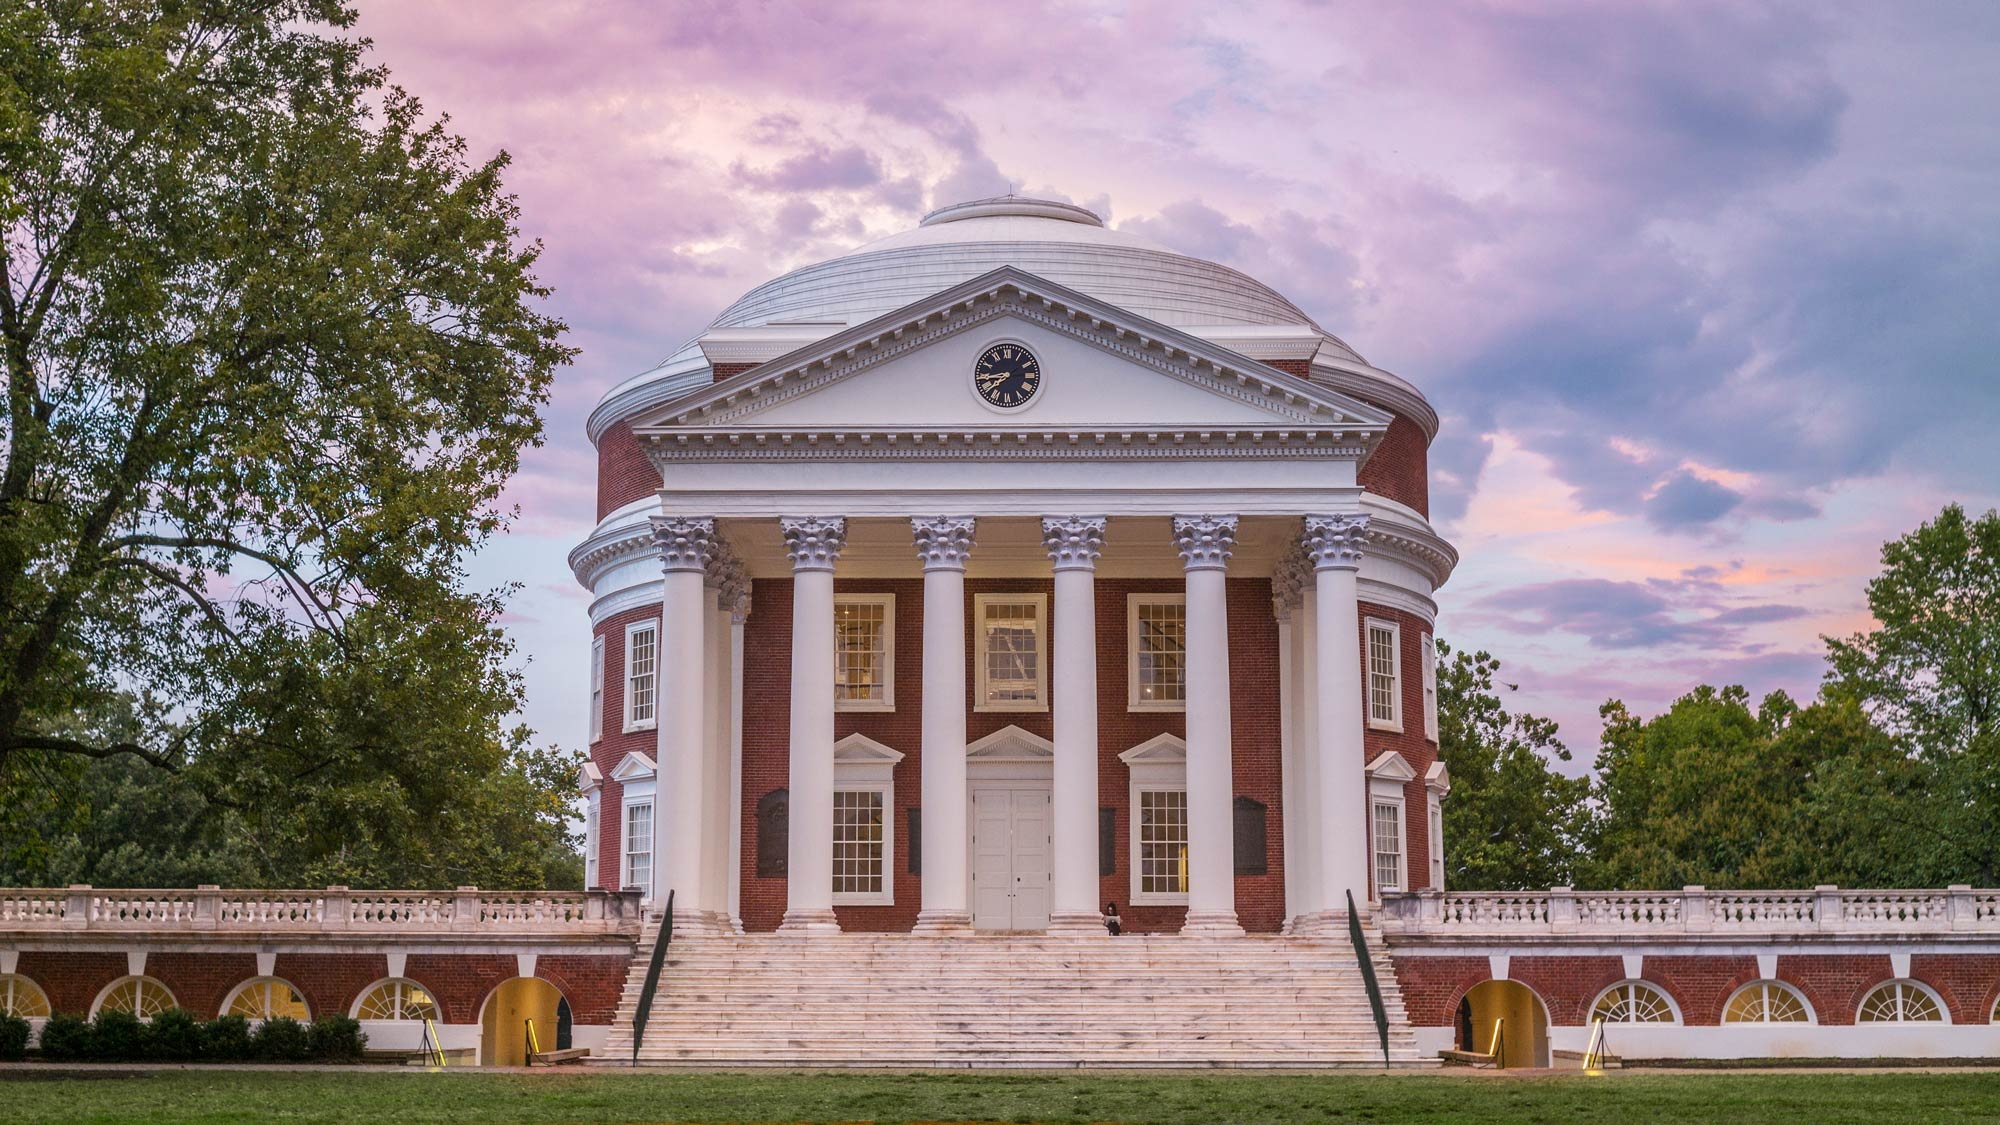 uva_rotunda_sunset_sanjay_suchak